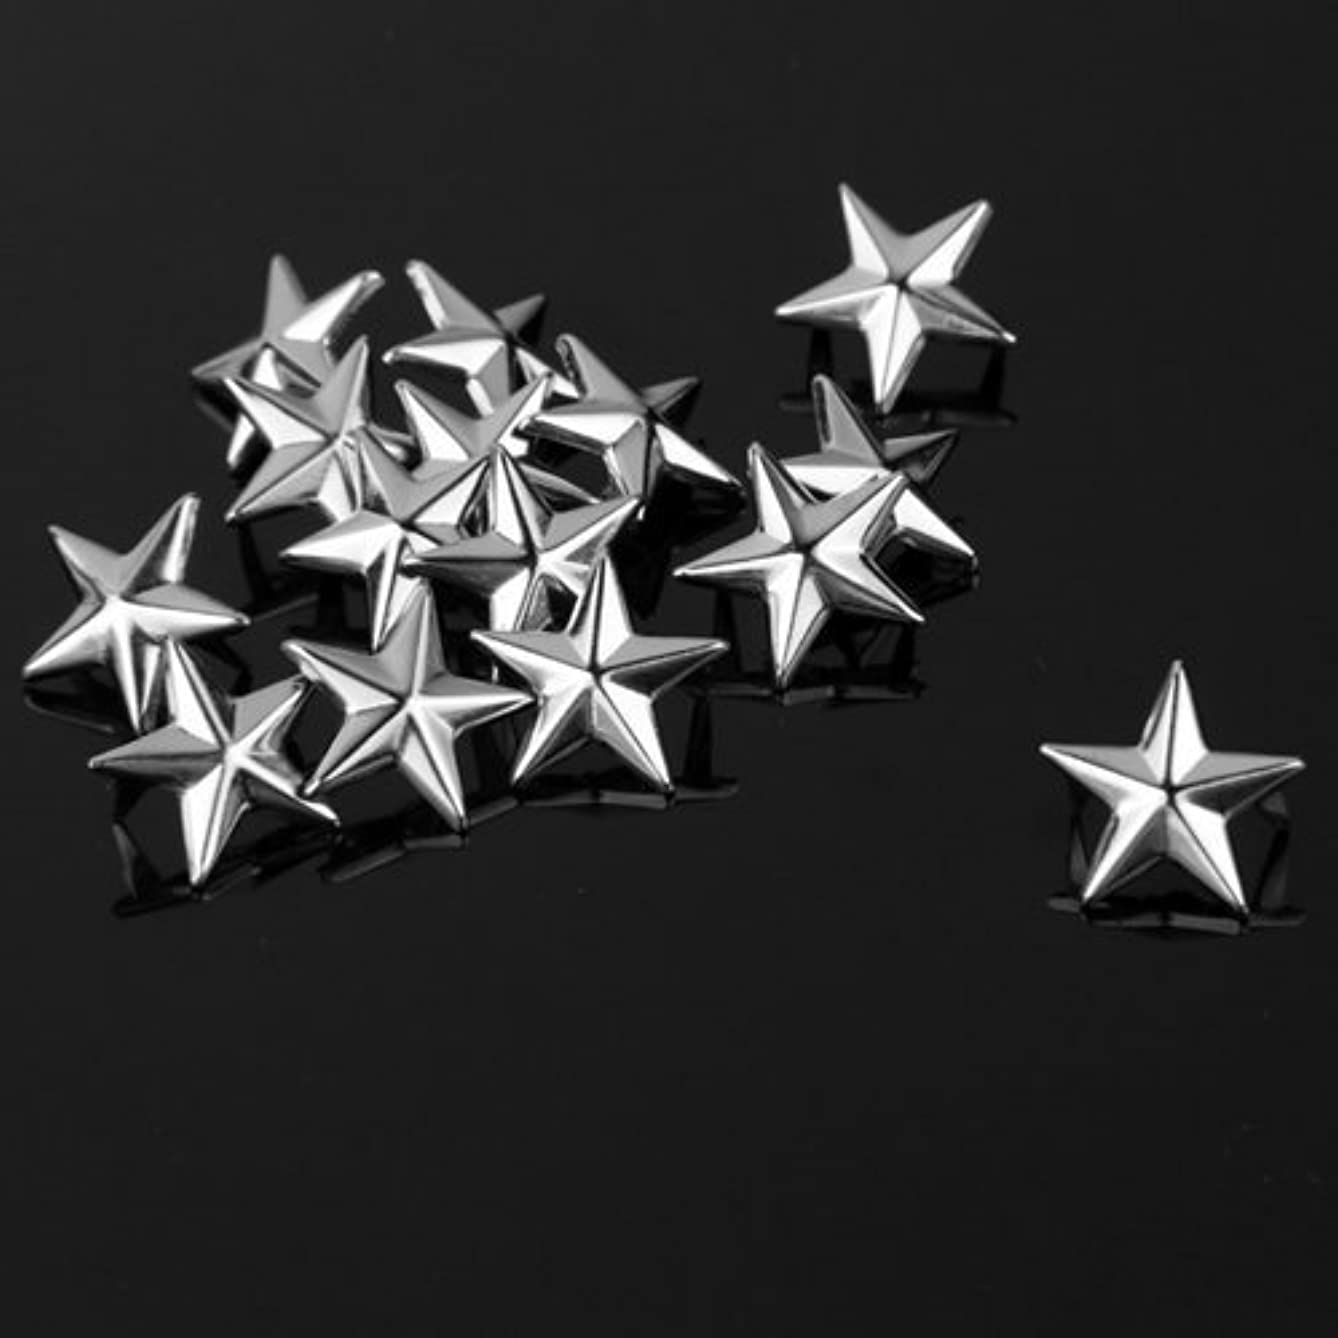 Vikeva 100 15mm Star Studs Spots Punk Rock Nailheads Spikes for Bag Shoes Bracelet